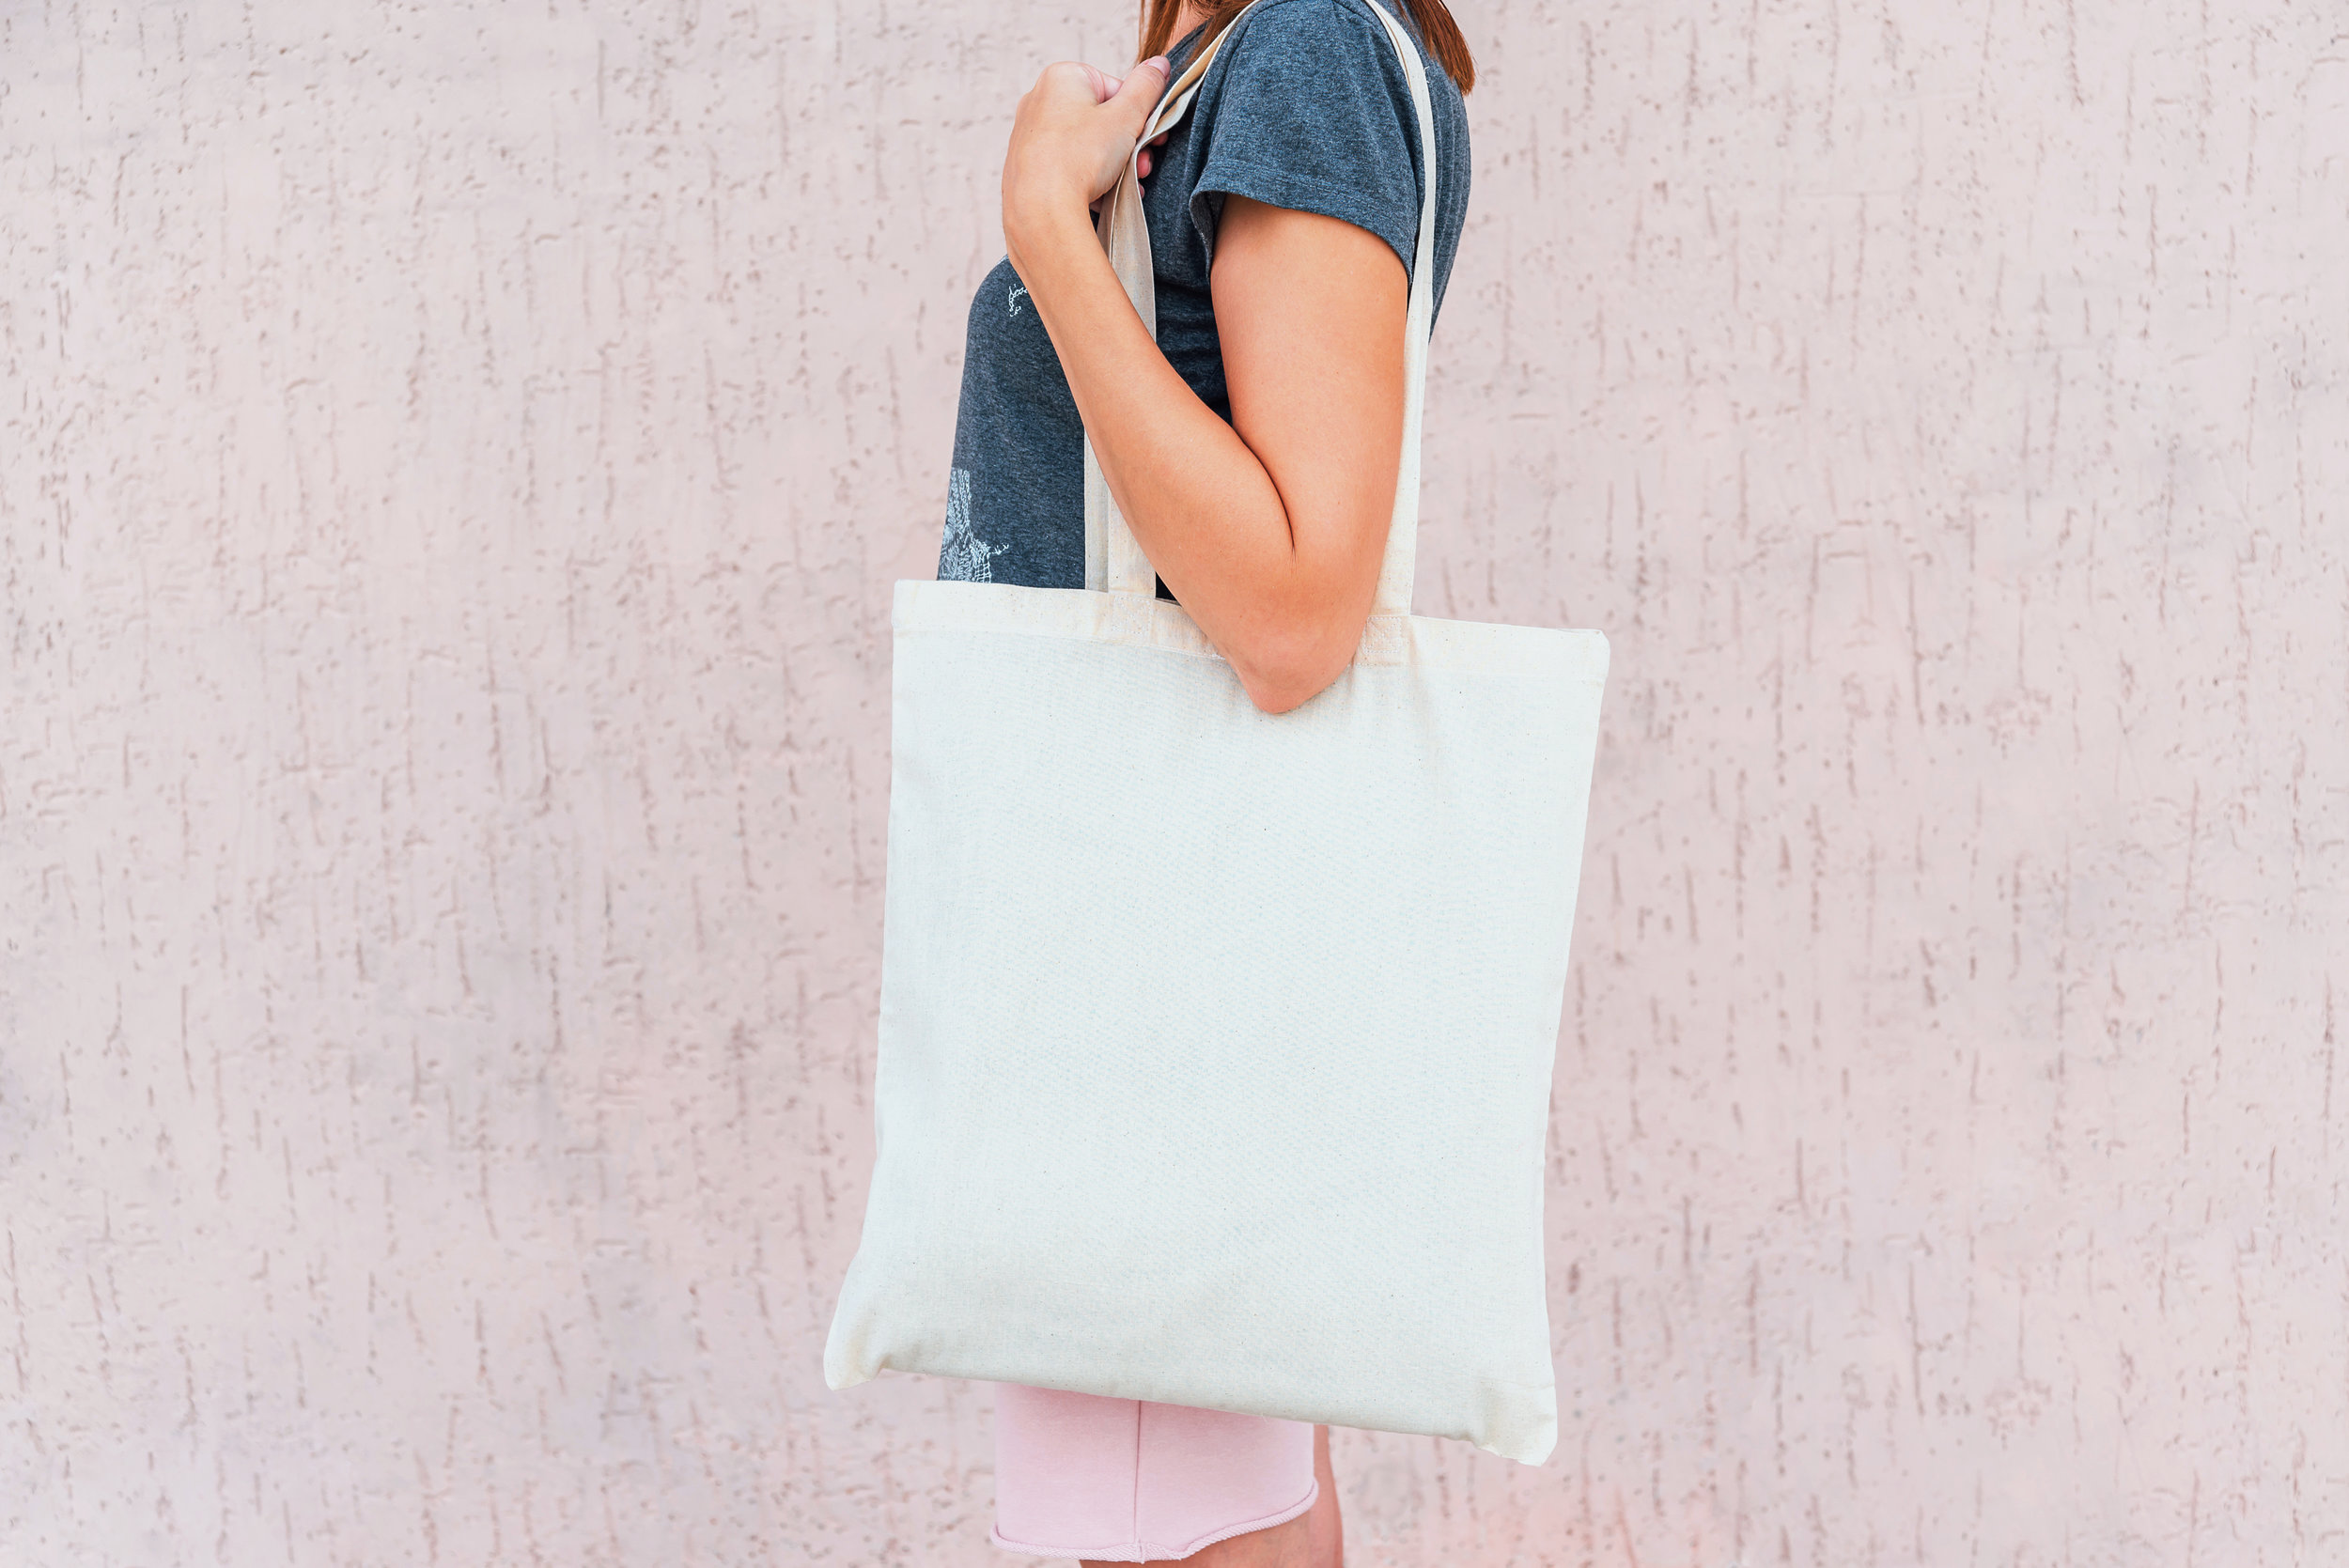 Young-woman-with-white-cotton-bag-in-her-hands.-1049841598_5000x3338.jpeg